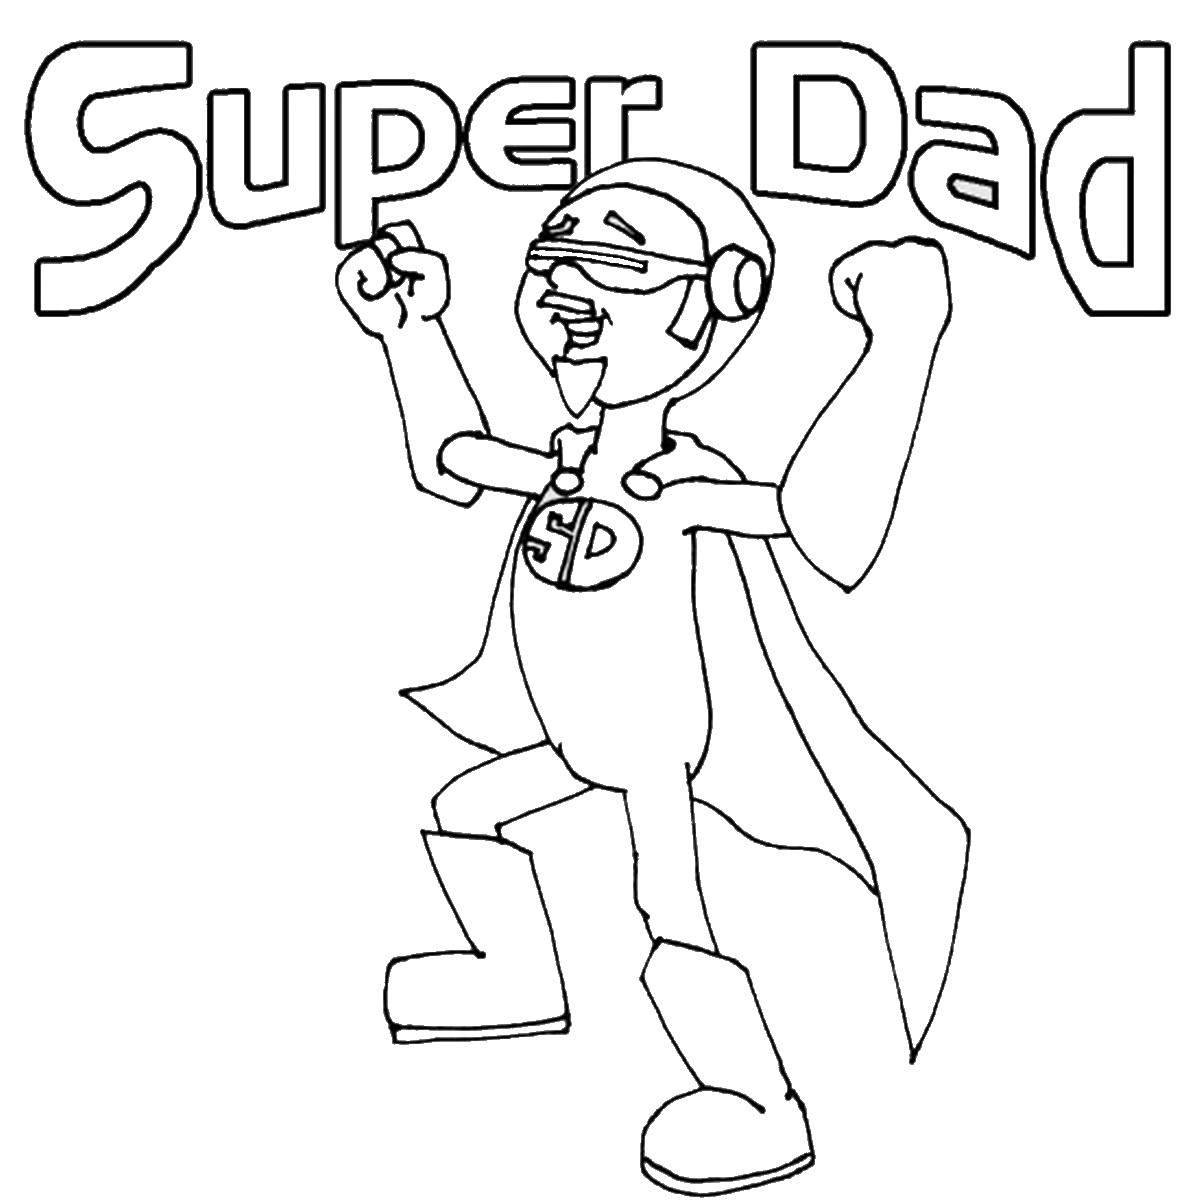 Super Dad Coloring Pages At Getdrawings